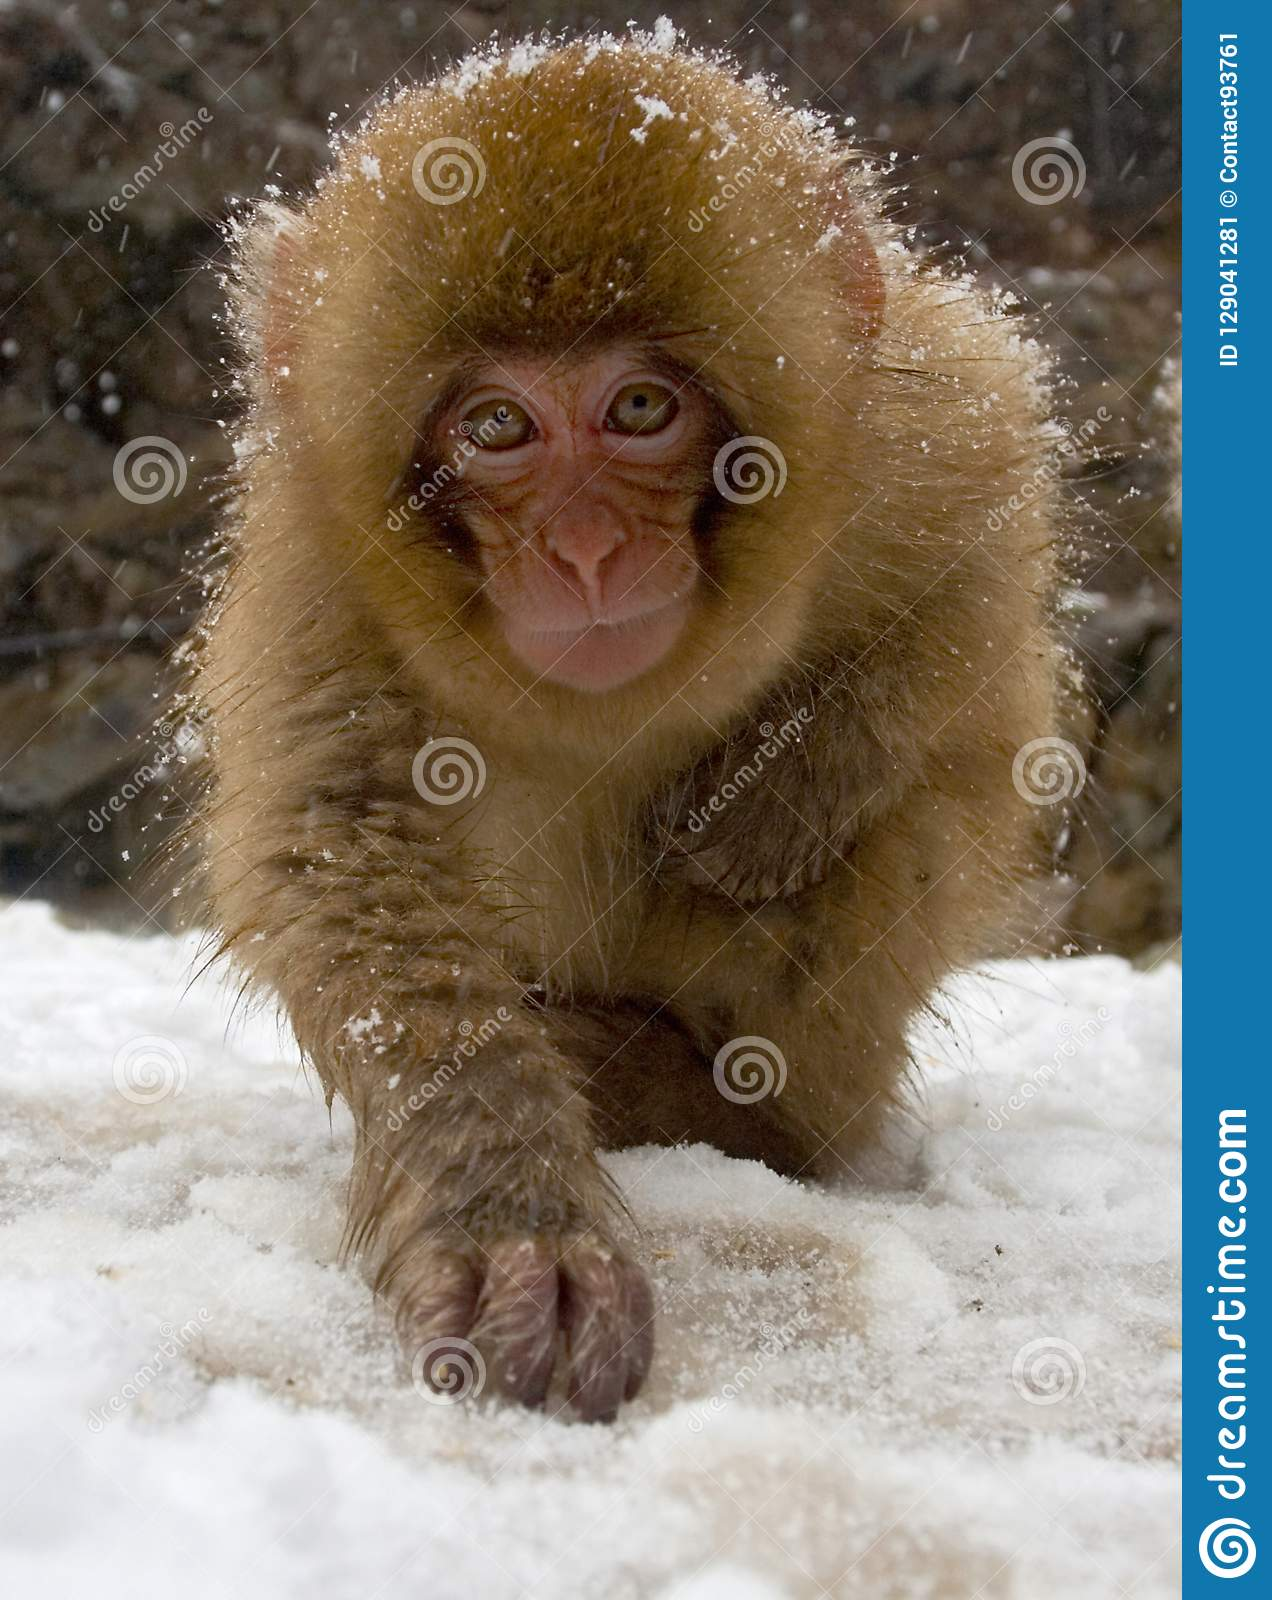 Japanese Macaque, Japanse Makaak, Macaca fuscata